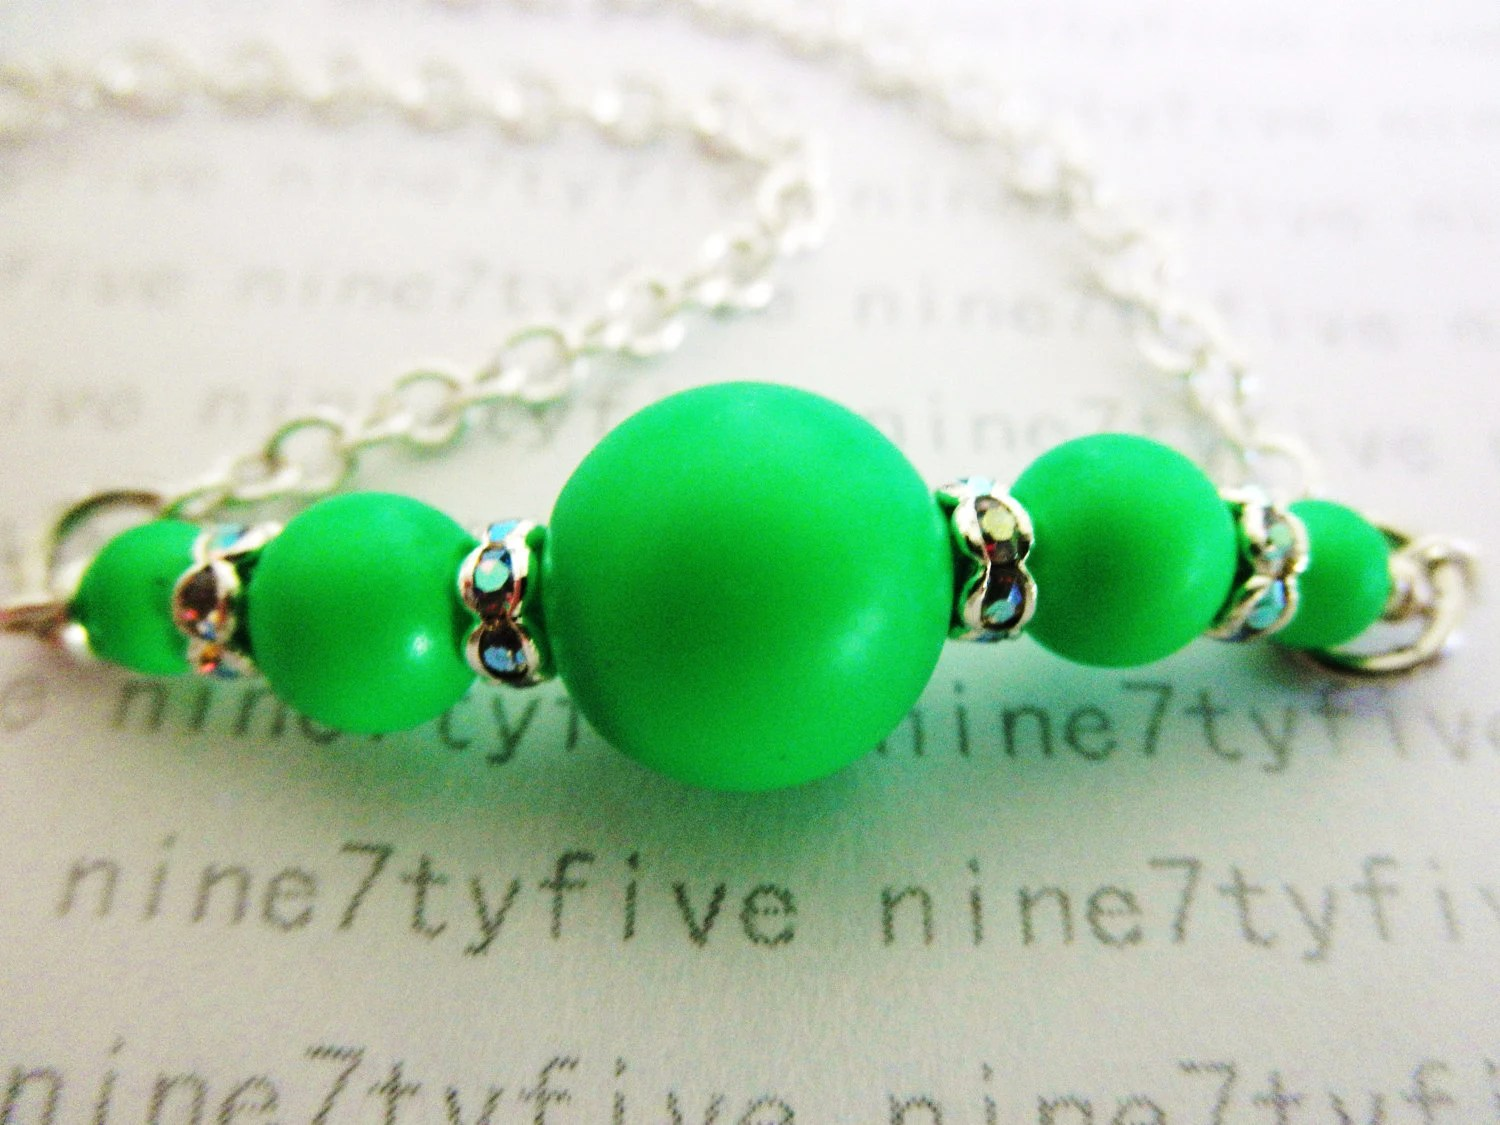 NEON green swarovski crystal pearls necklace - nine7tyfive